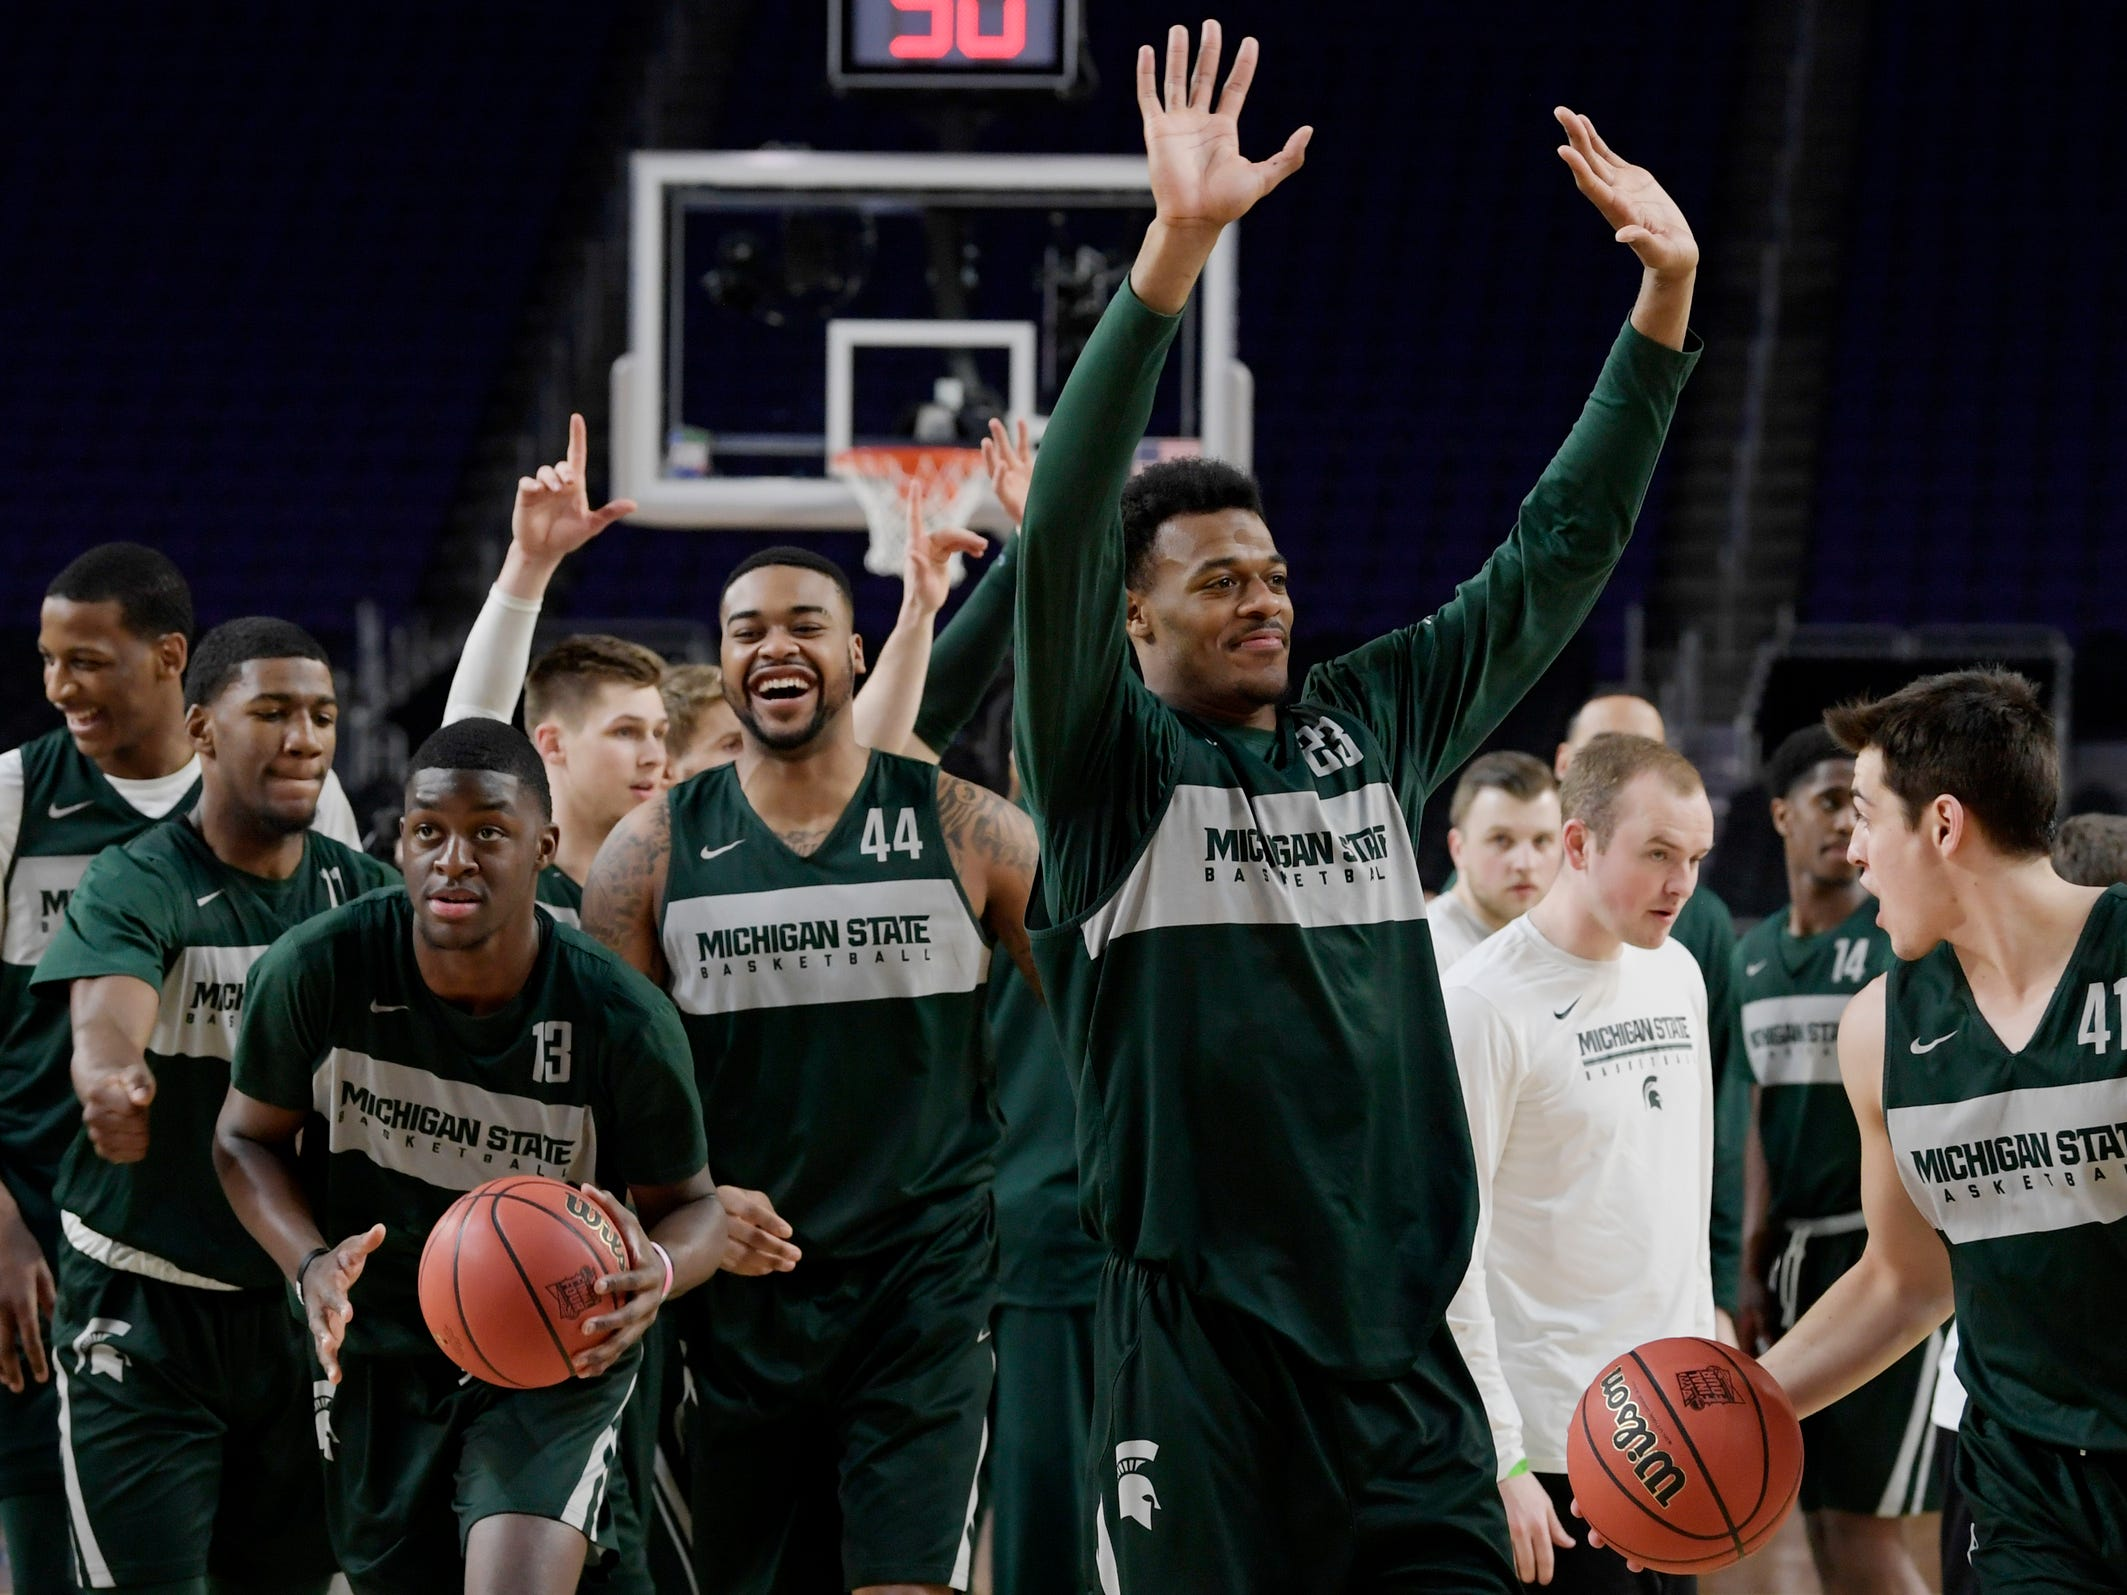 Michigan State forward Xavier Tillman (23) waves to the crowd as the team finishes an open practice at U.S. Bank Stadium during the Final Four in Minneapolis on Friday, April 5, 2019.